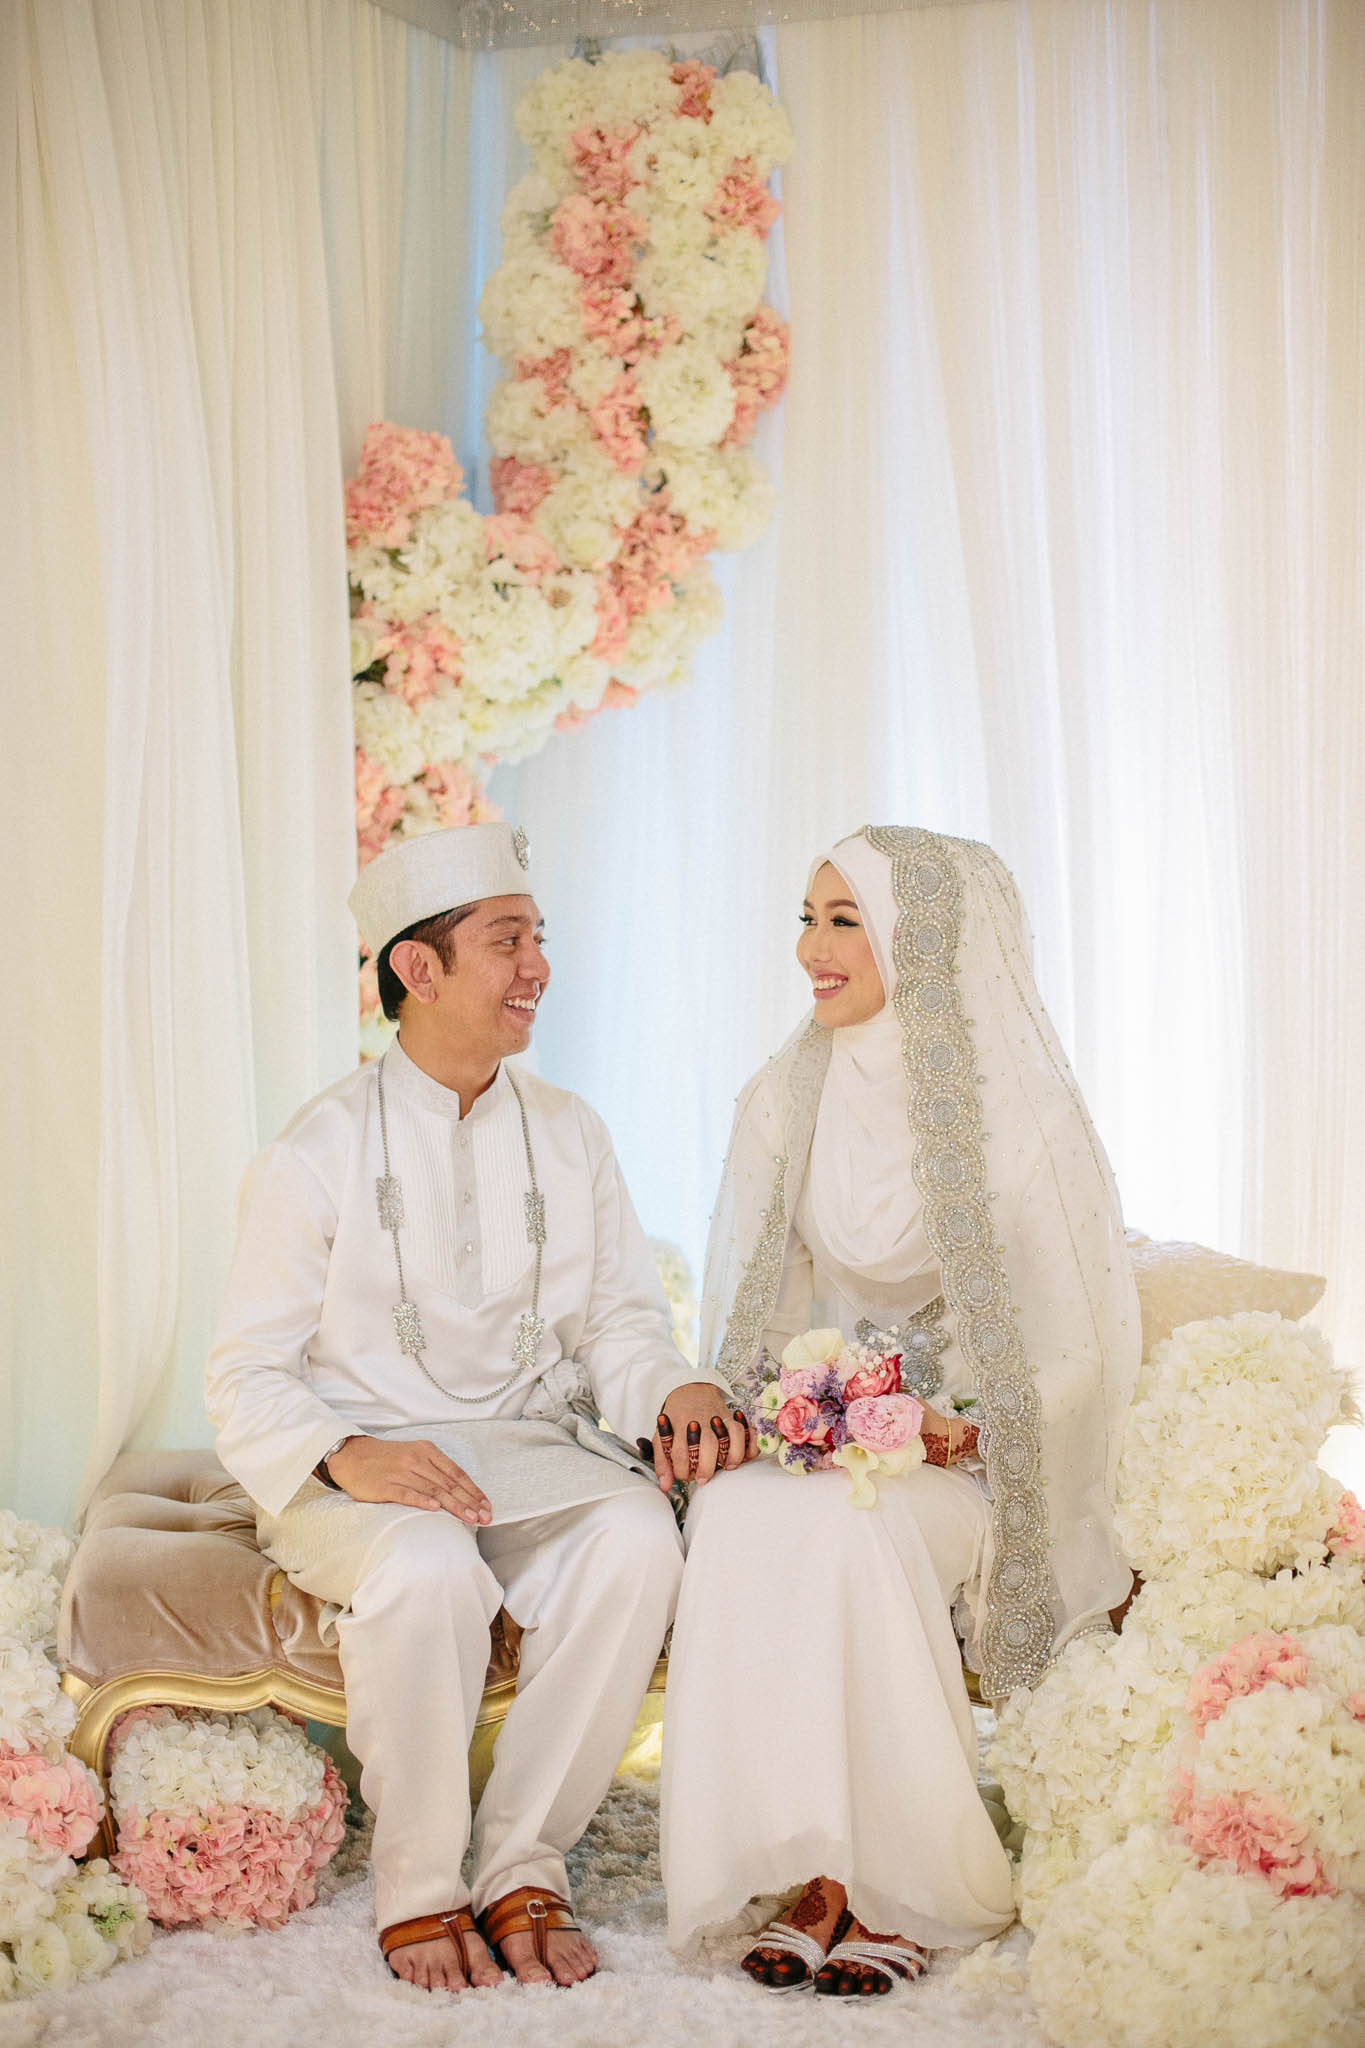 singapore-wedding-photographer-we-made-these-2016-selects-026.jpg